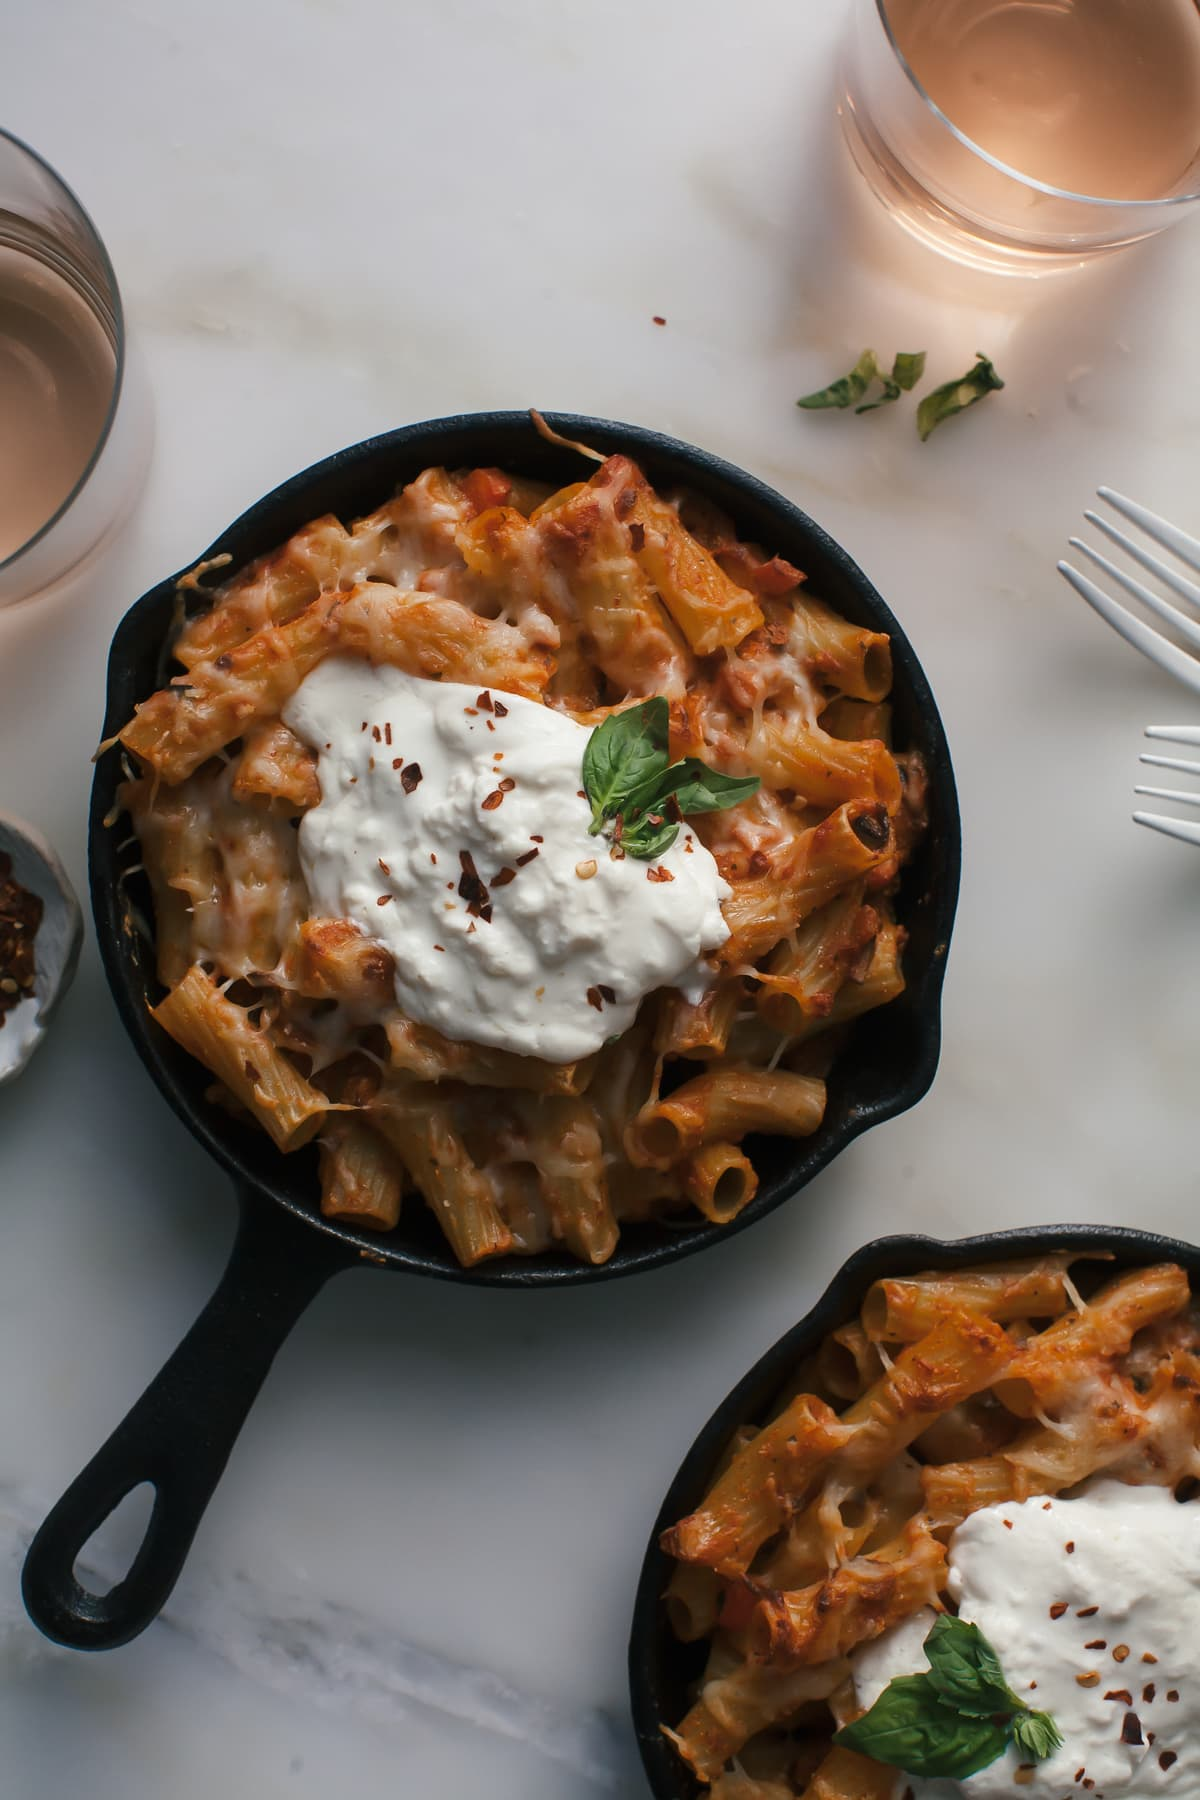 Veggie Baked Ziti with Burrata